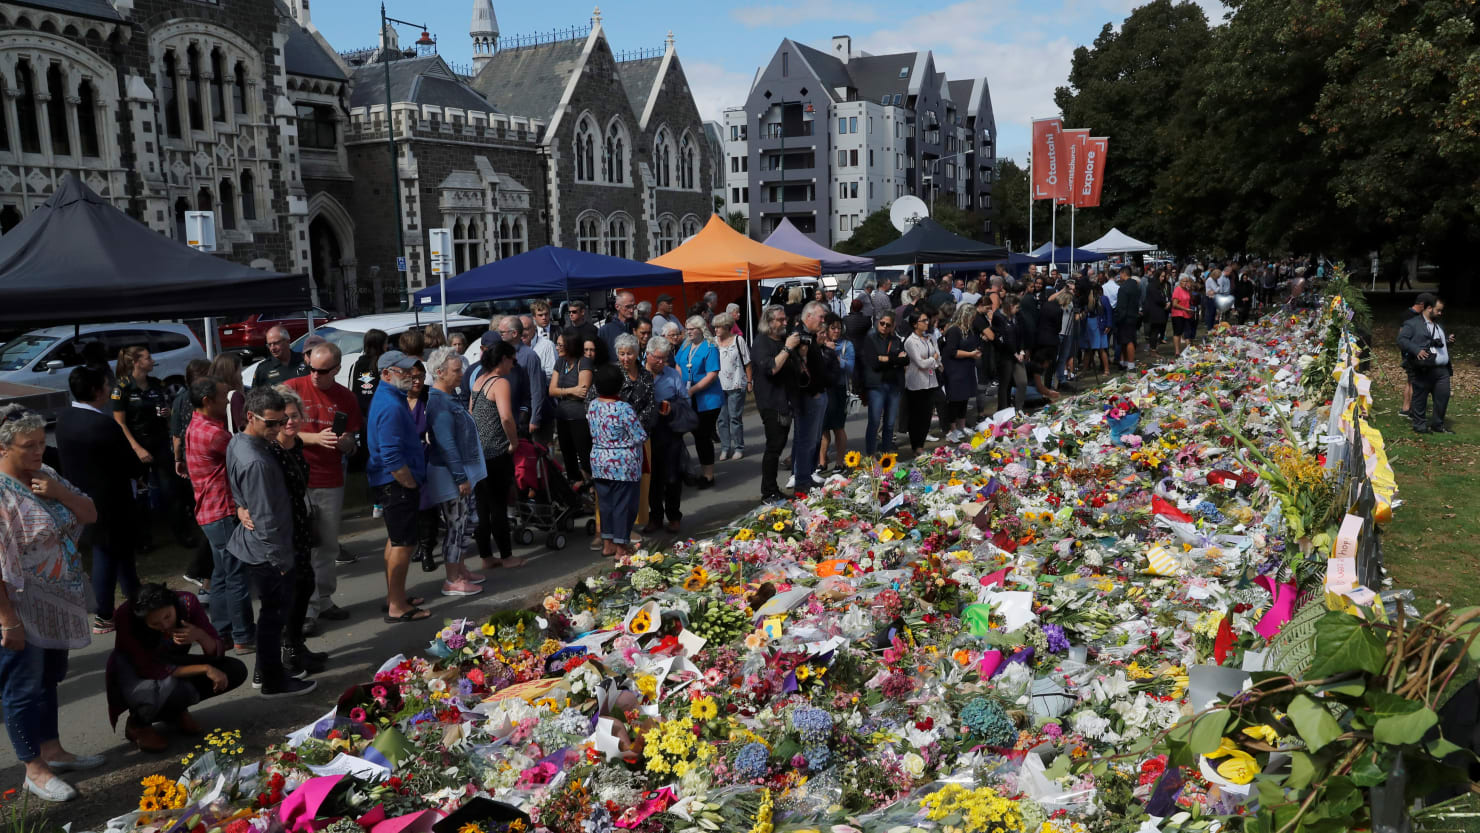 Christchurch Shooting Live Pinterest: New Zealand Shooting: Facebook Says No Viewers Reported